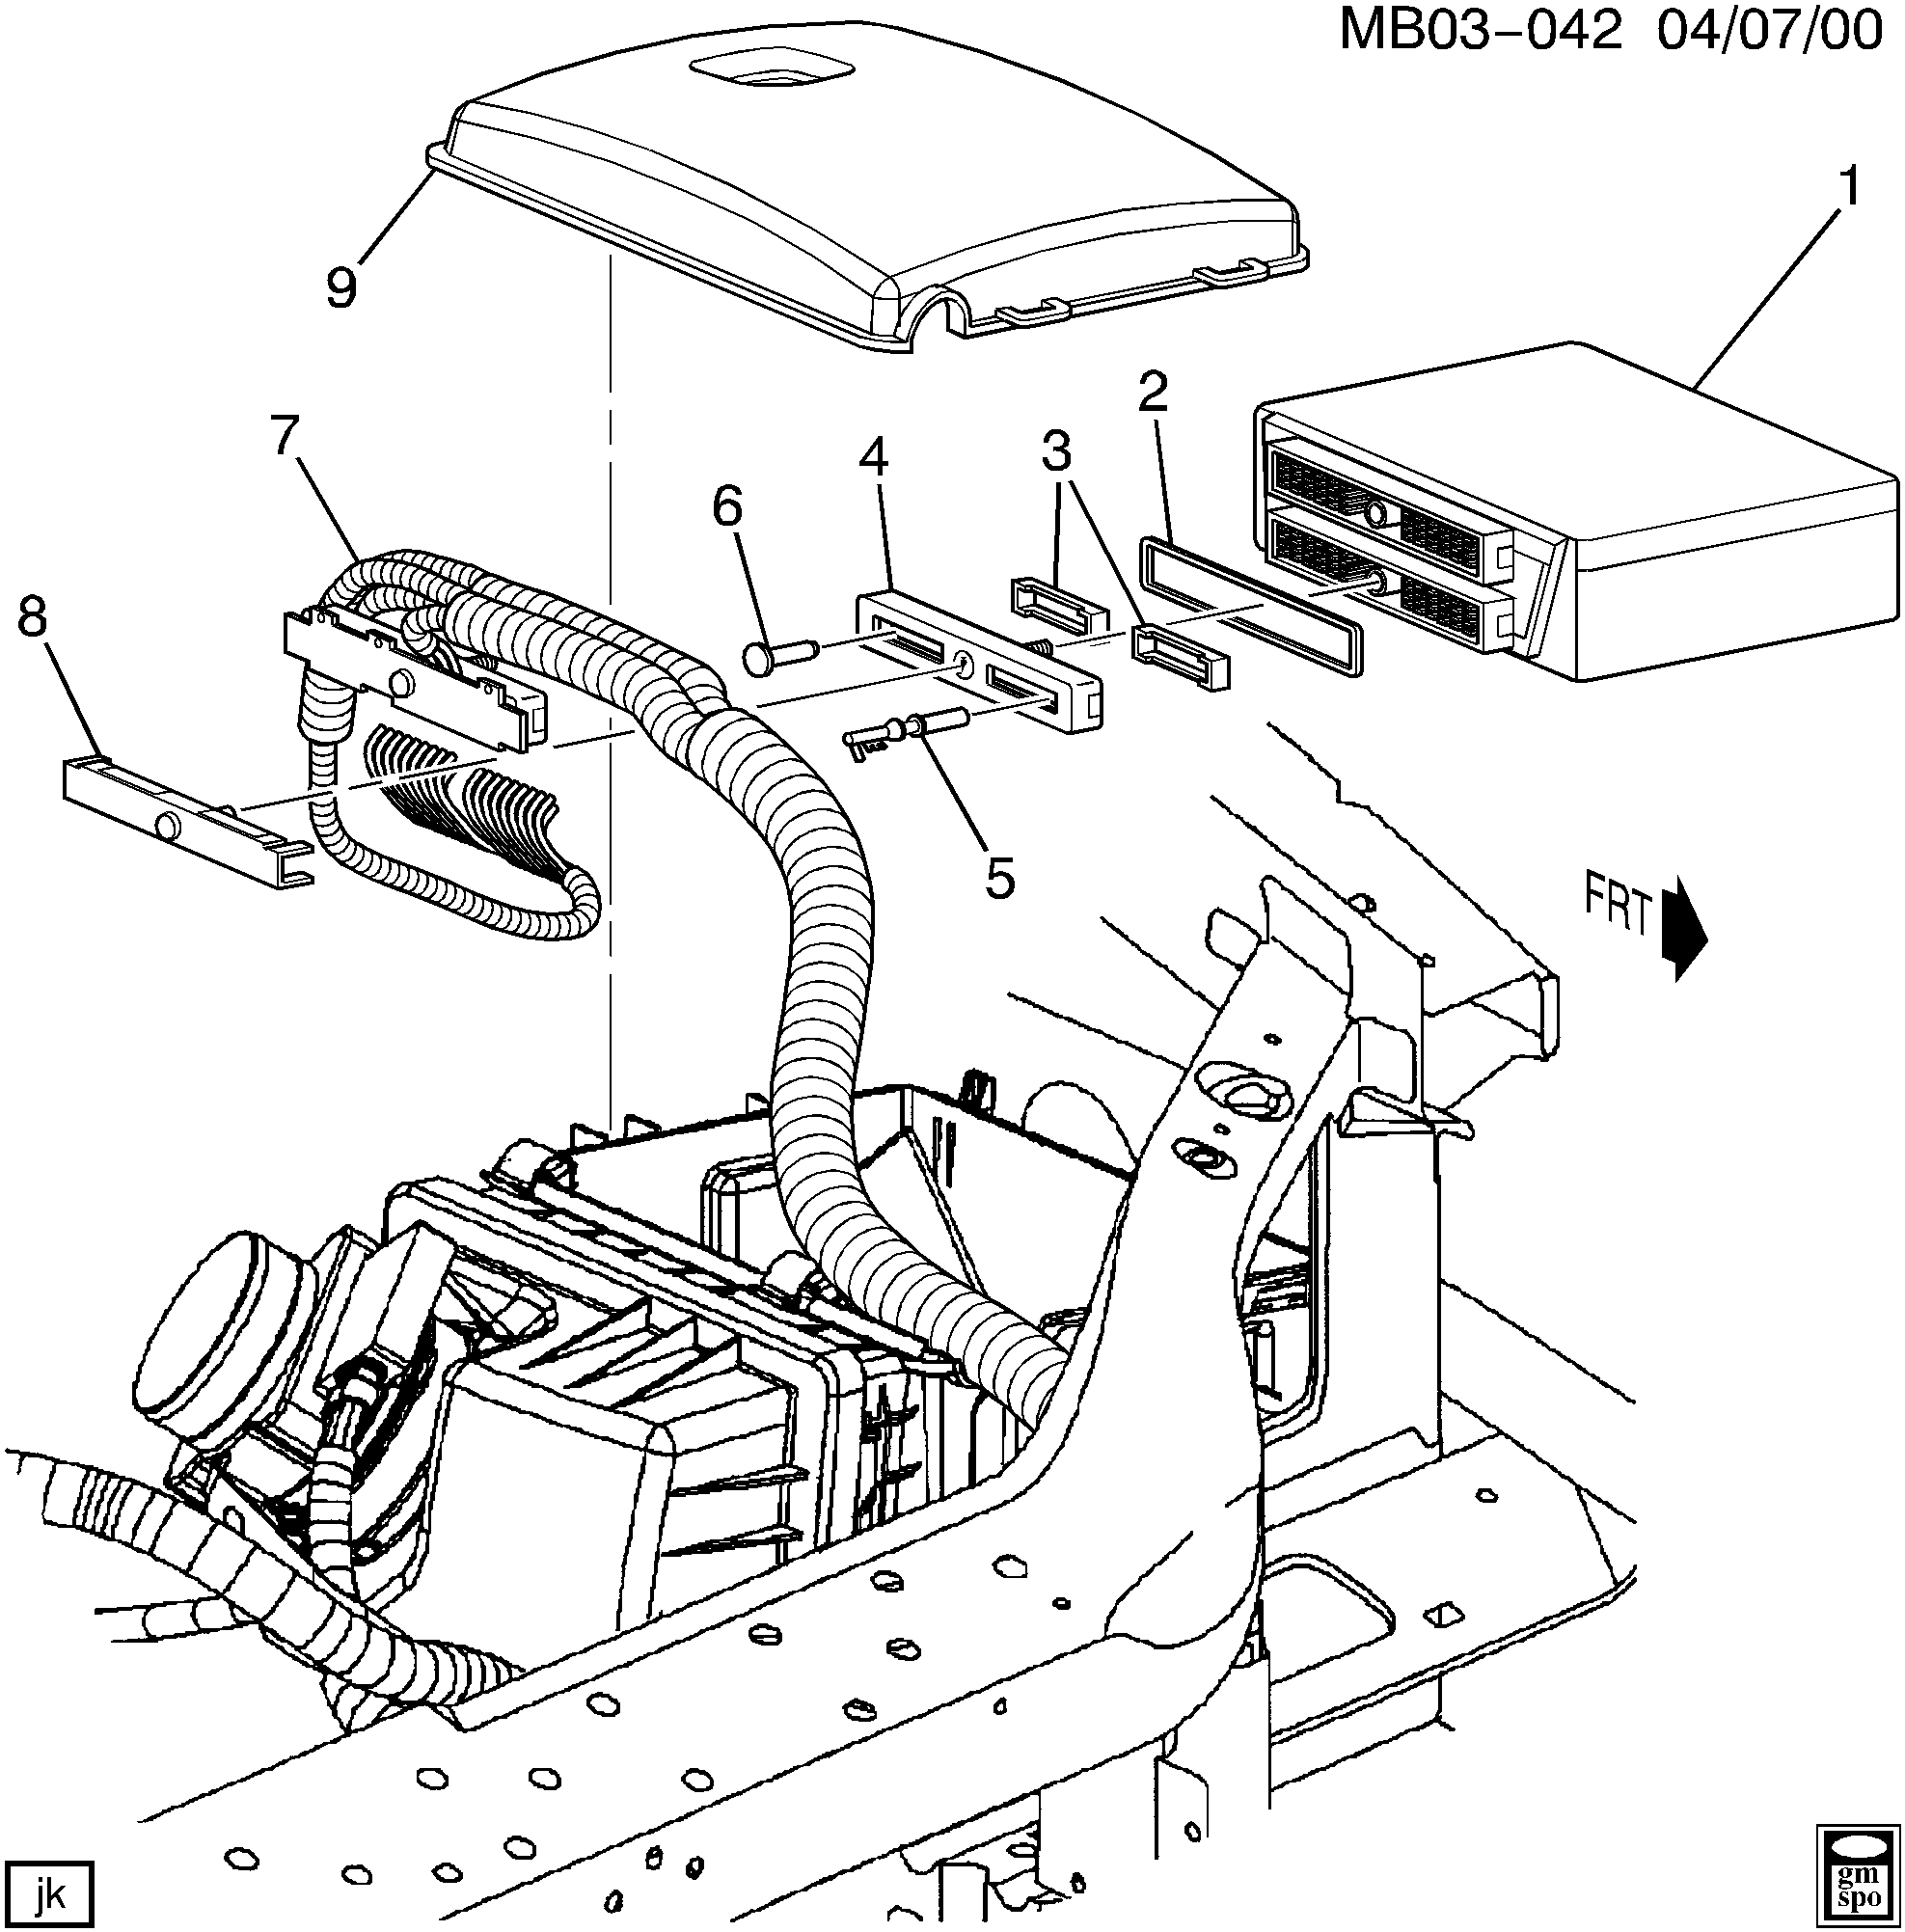 [WRG-5568] Diagram Of 2005 Buick Rendezvous Fuse Box